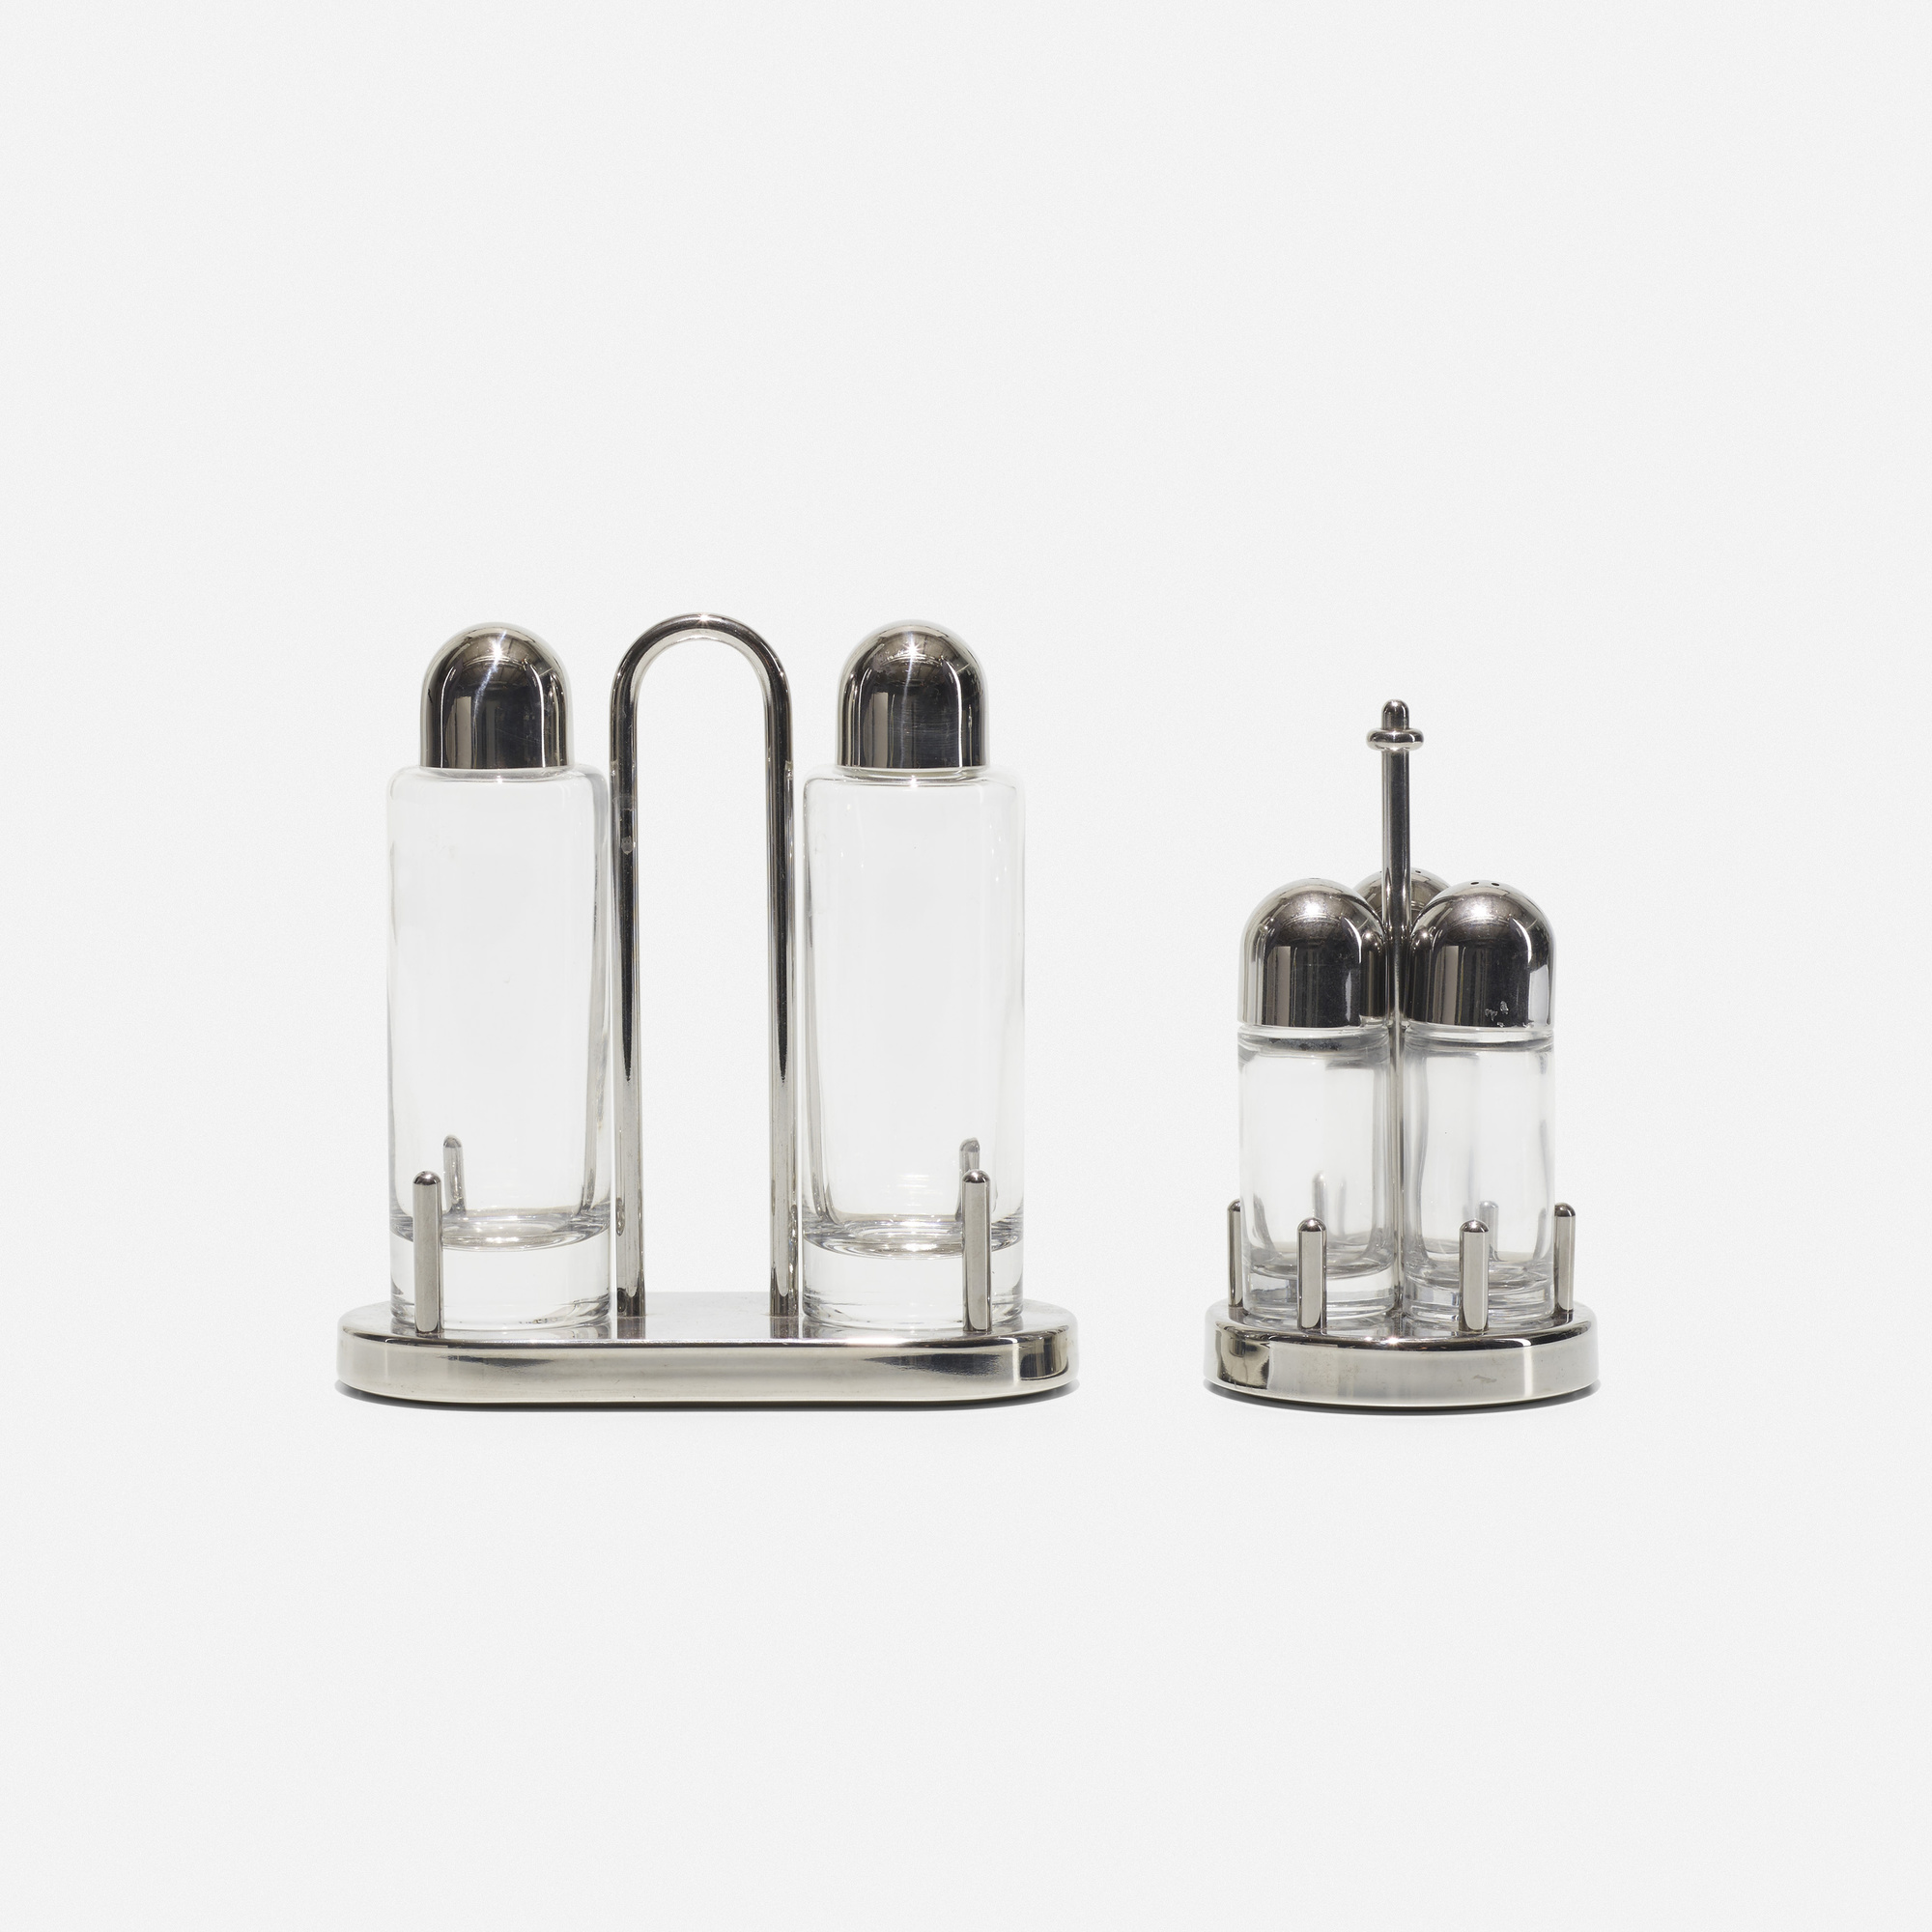 248: Ettore Sottsass / condiment services, set of two (1 of 1)